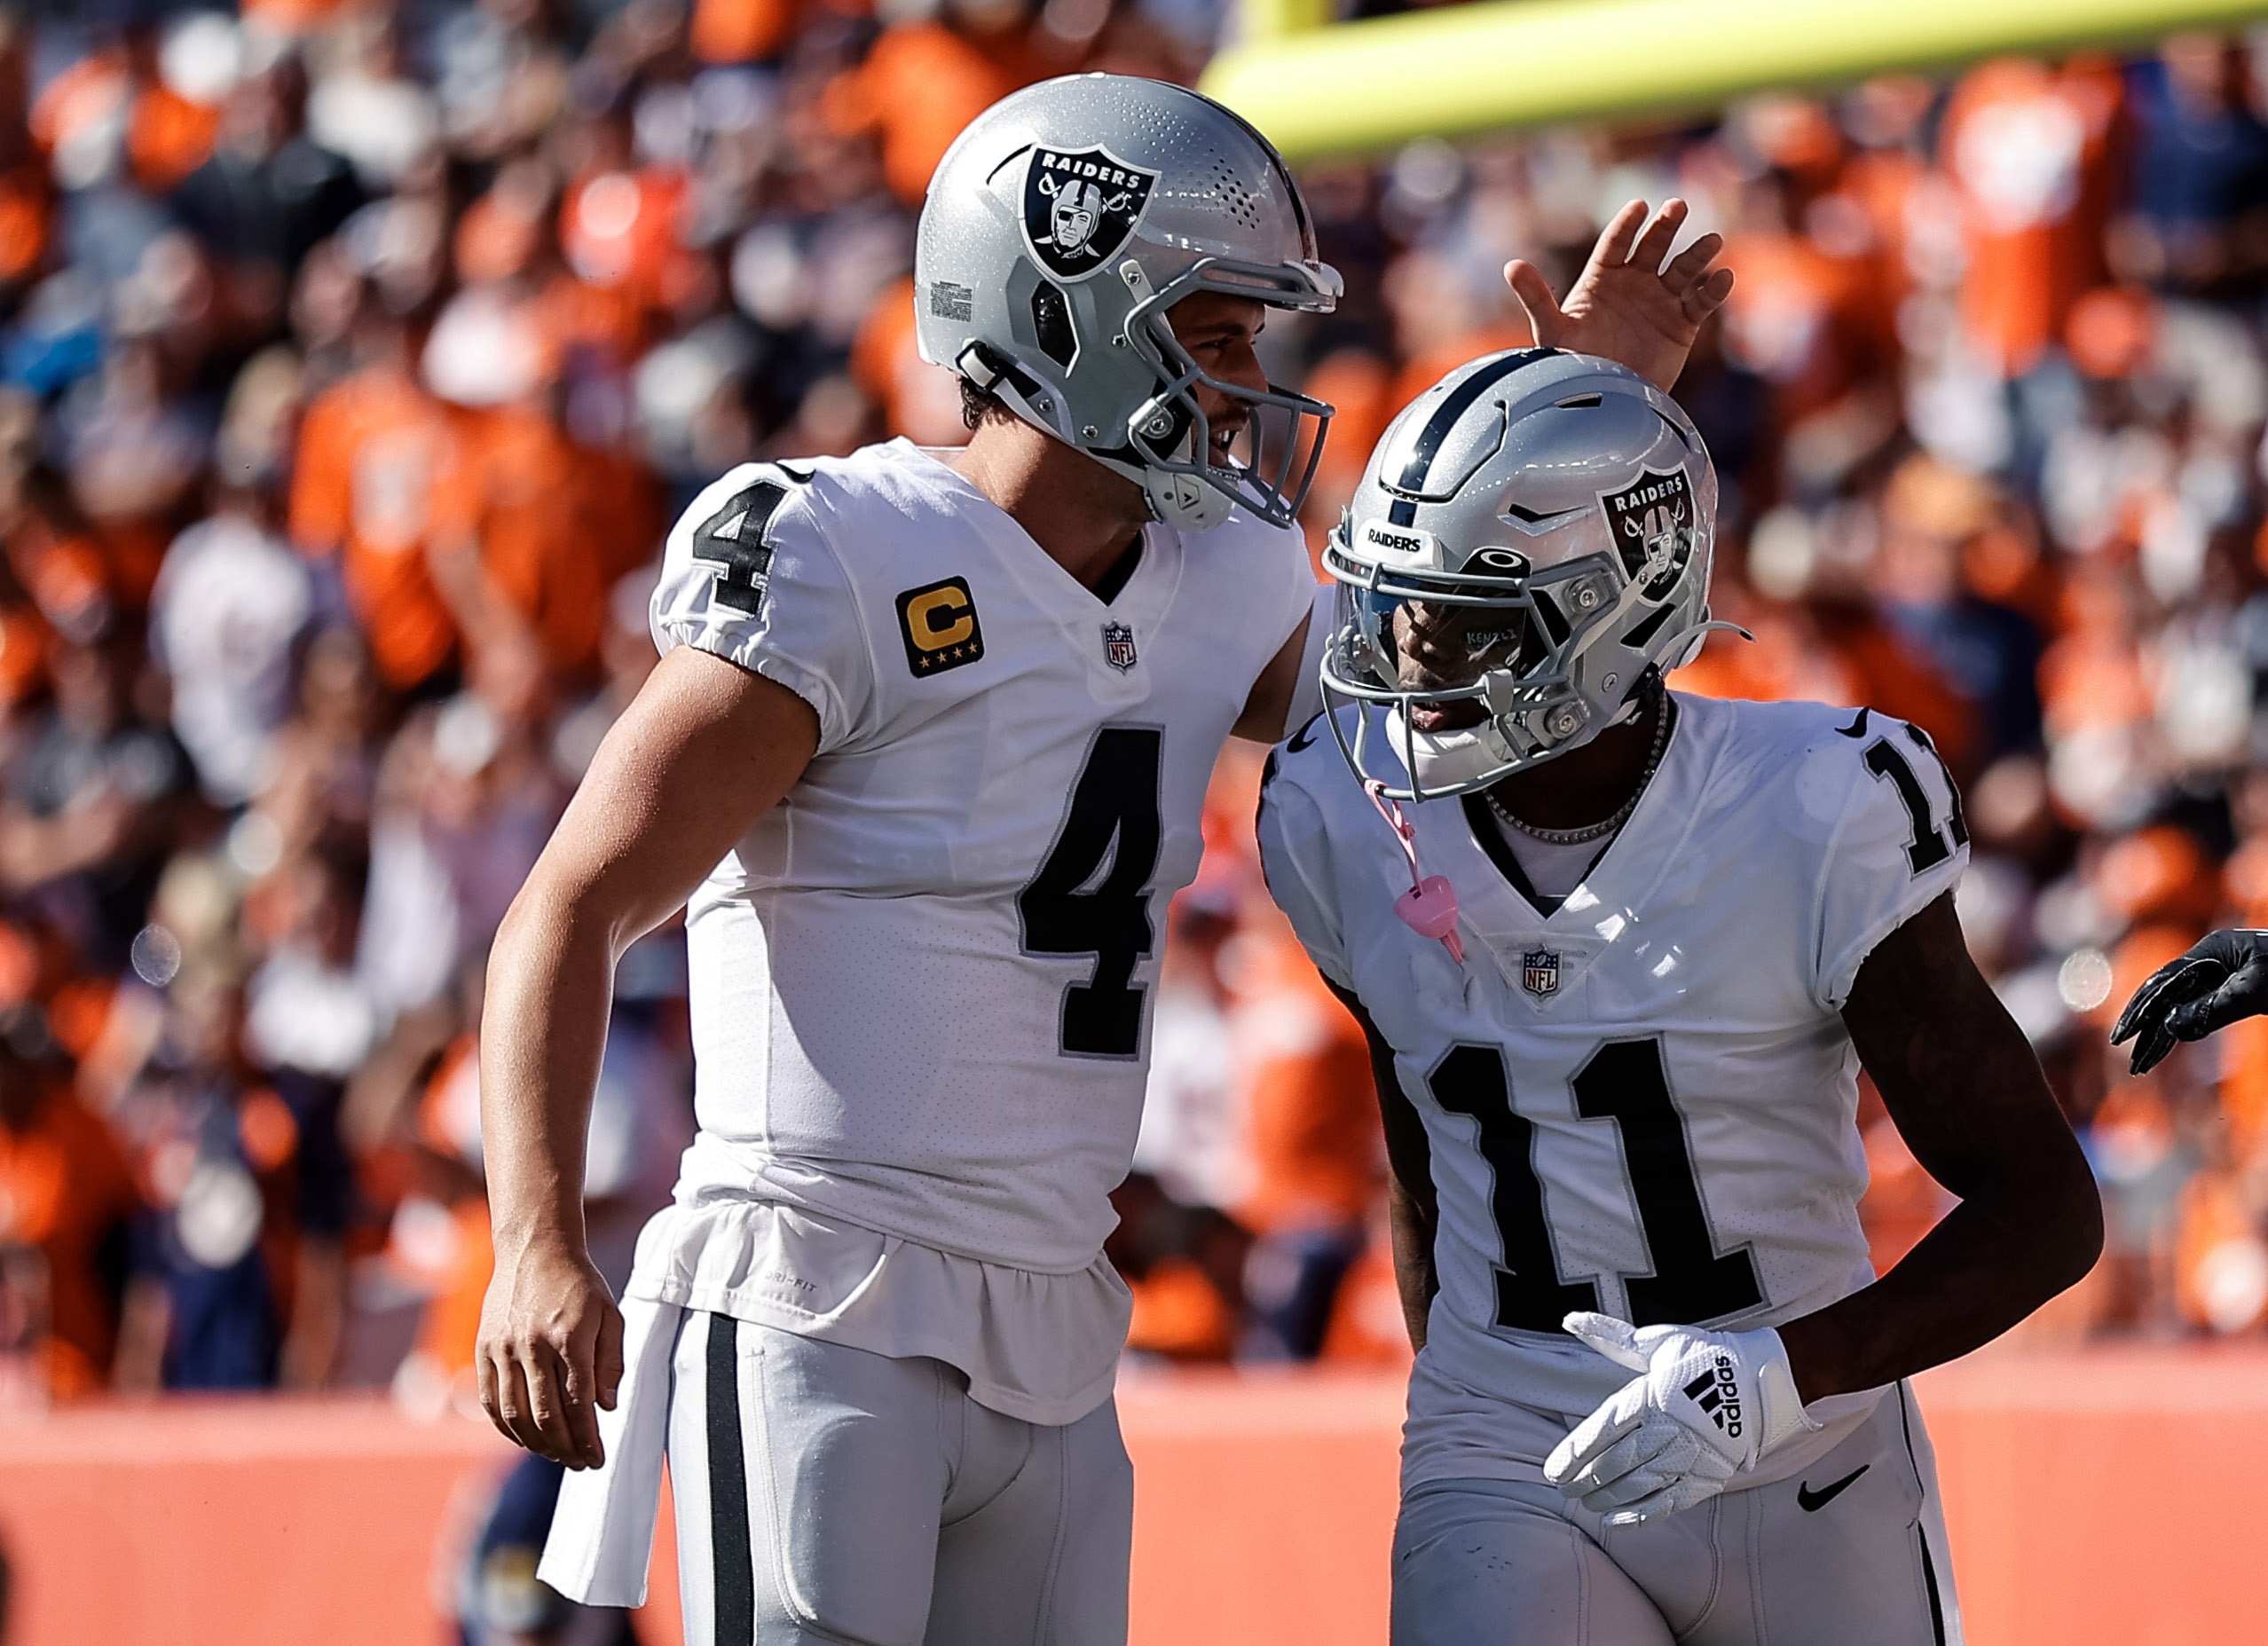 Las Vegas Raiders wide receiver Henry Ruggs III (11) celebrates with quarterback Derek Carr (4) after a touchdown in the first quarter against the Denver Broncos at Empower Field at Mile High.